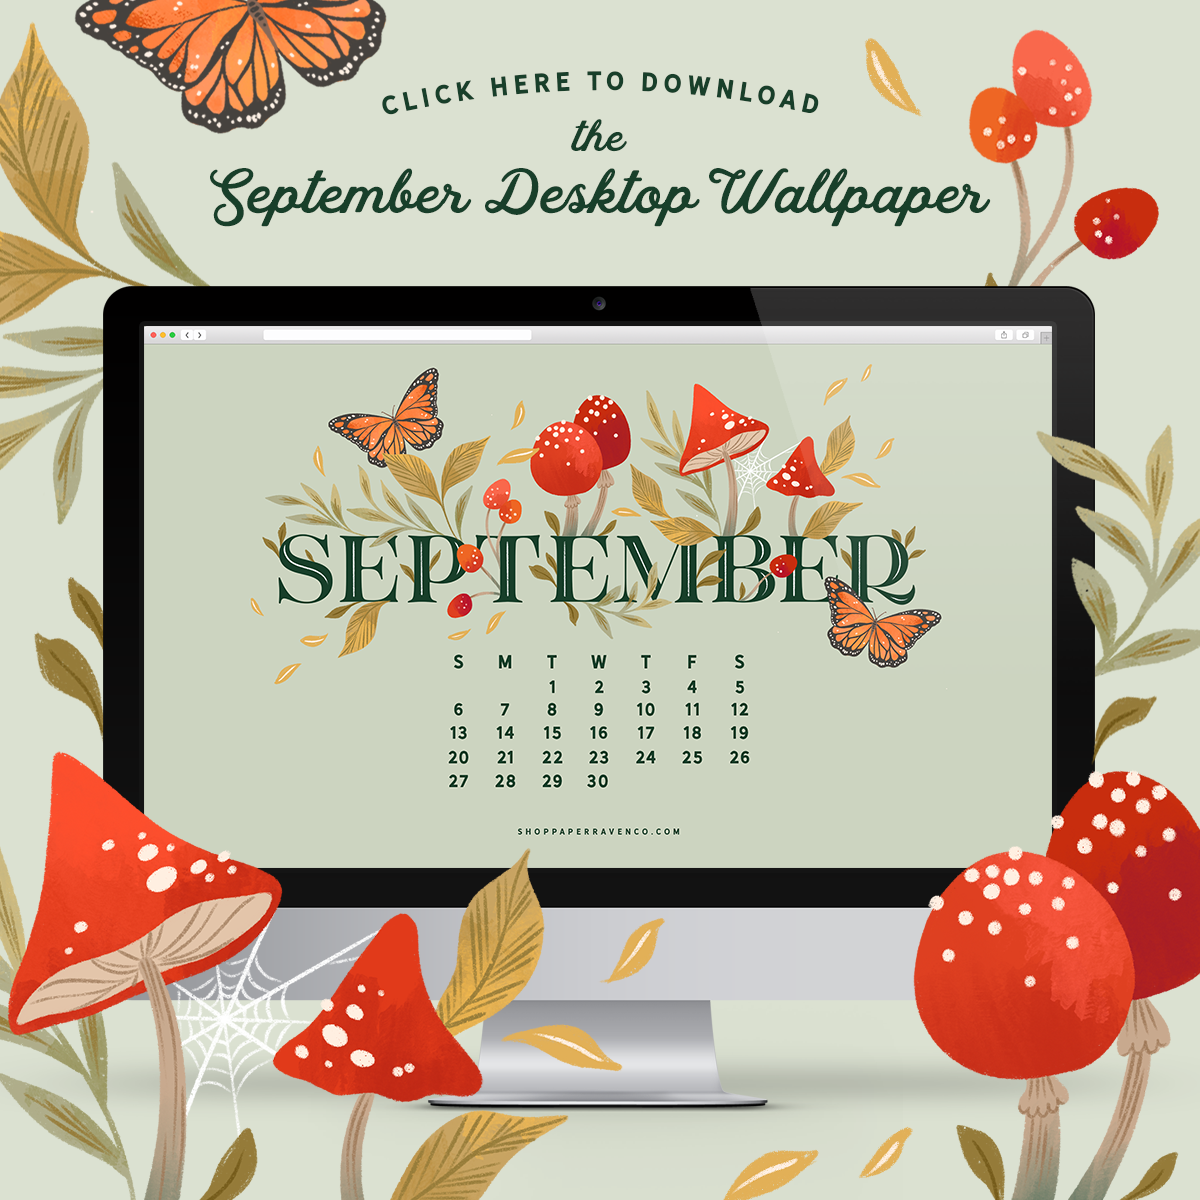 September 2020 Illustrated Desktop Wallpaper by Paper Raven Co. | www.ShopPaperRavenCo.com #dressyourtech #desktopwallpaper #desktopdownload